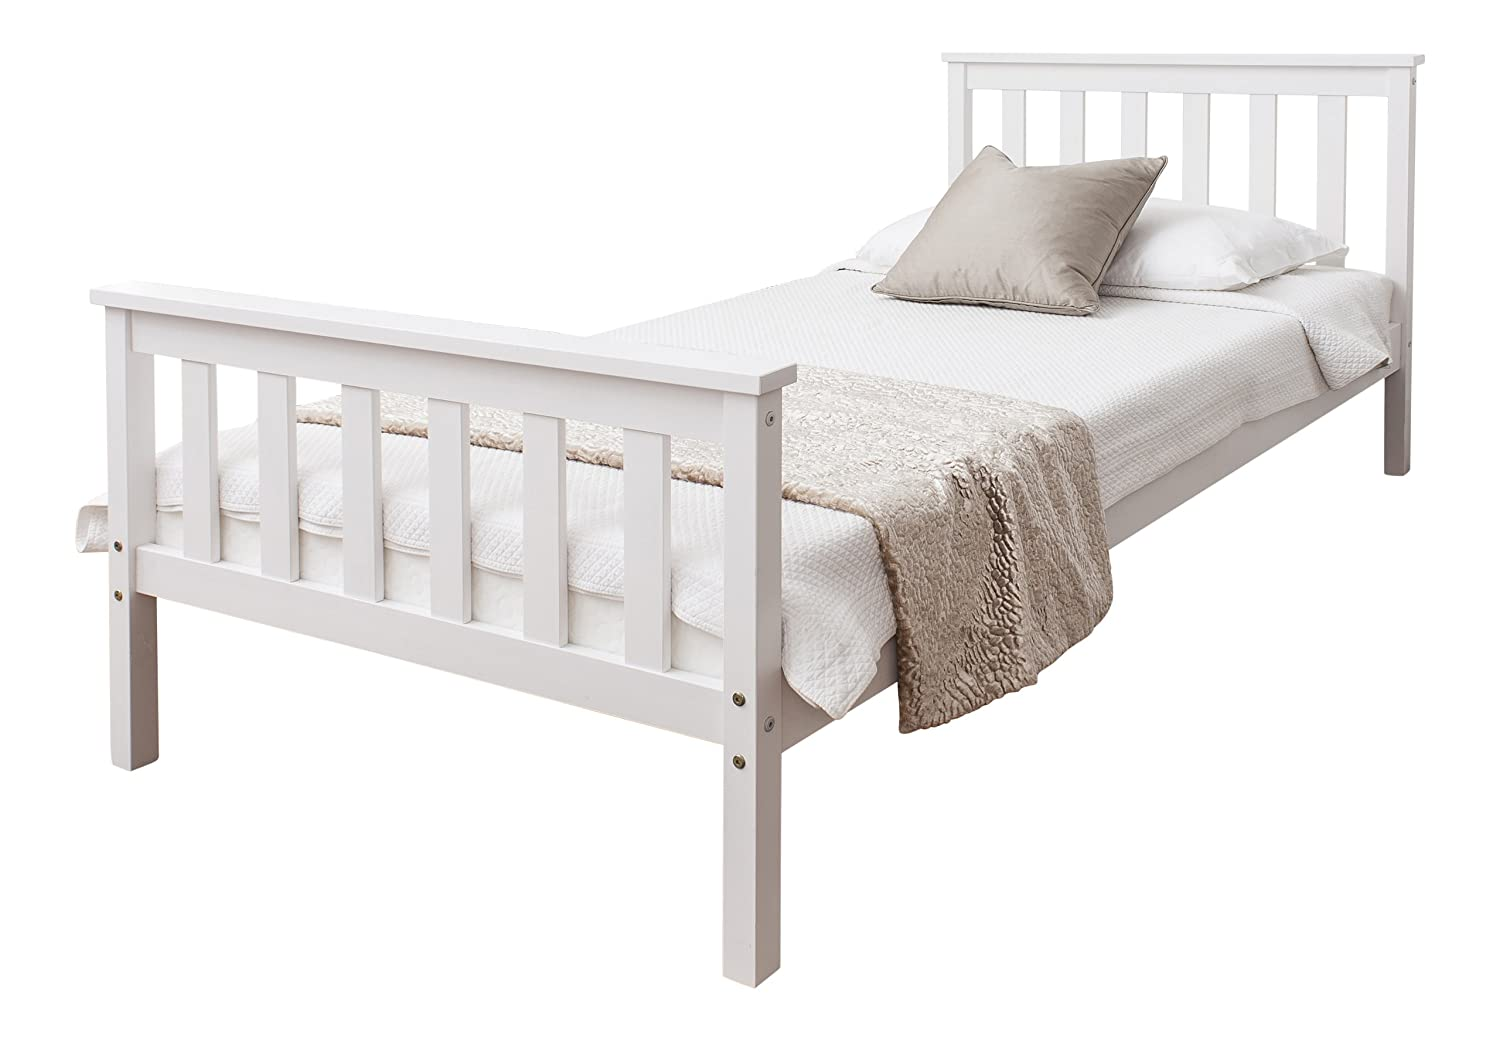 a frame silver htm buy c bed bedroom uk img ss sticker small with beds brennington single world online